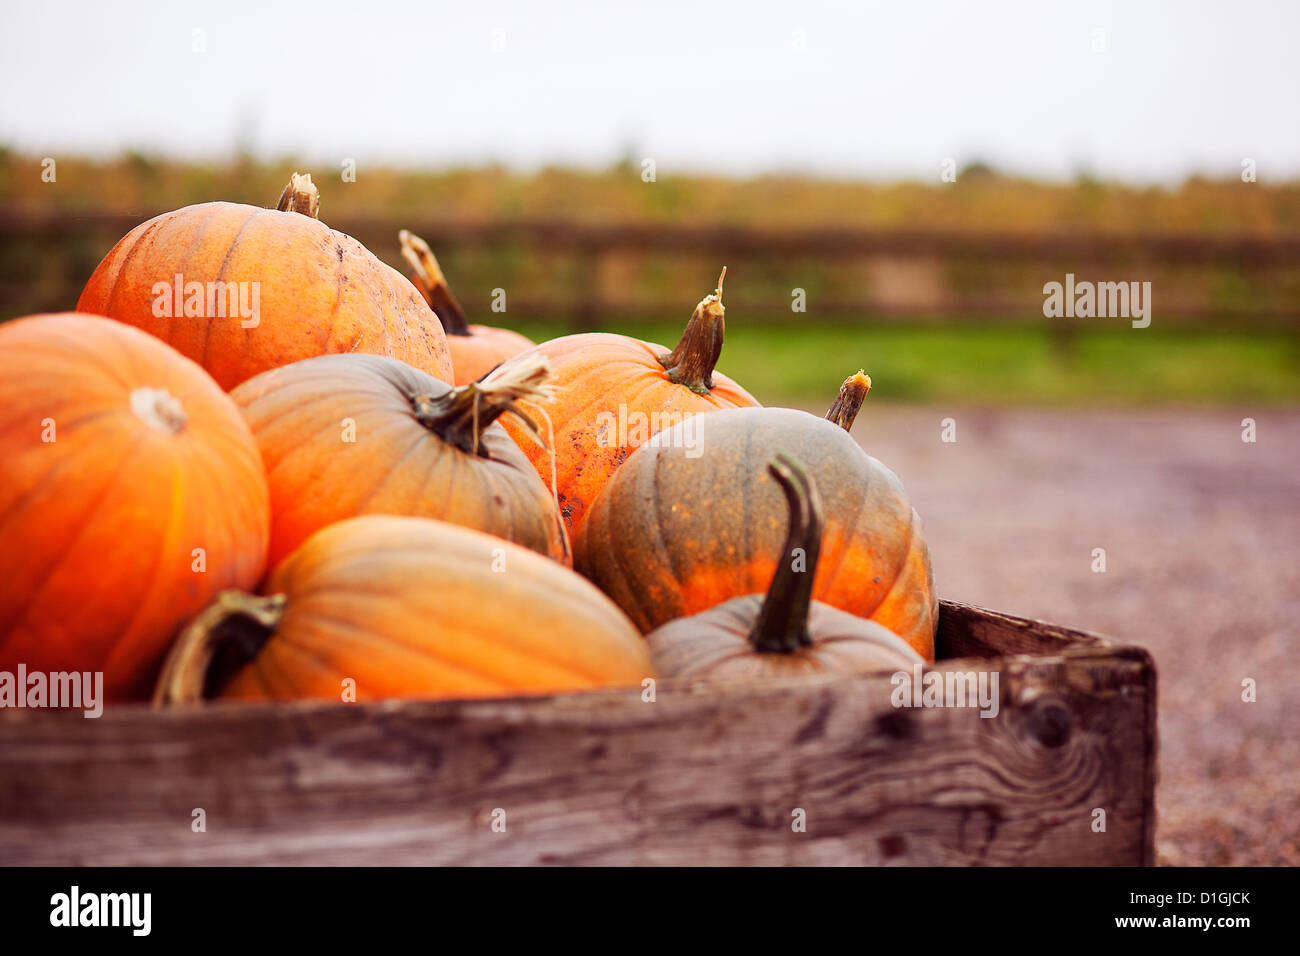 Lots of bright orange pumpkins in a crate ready for Halloween - Stock Image